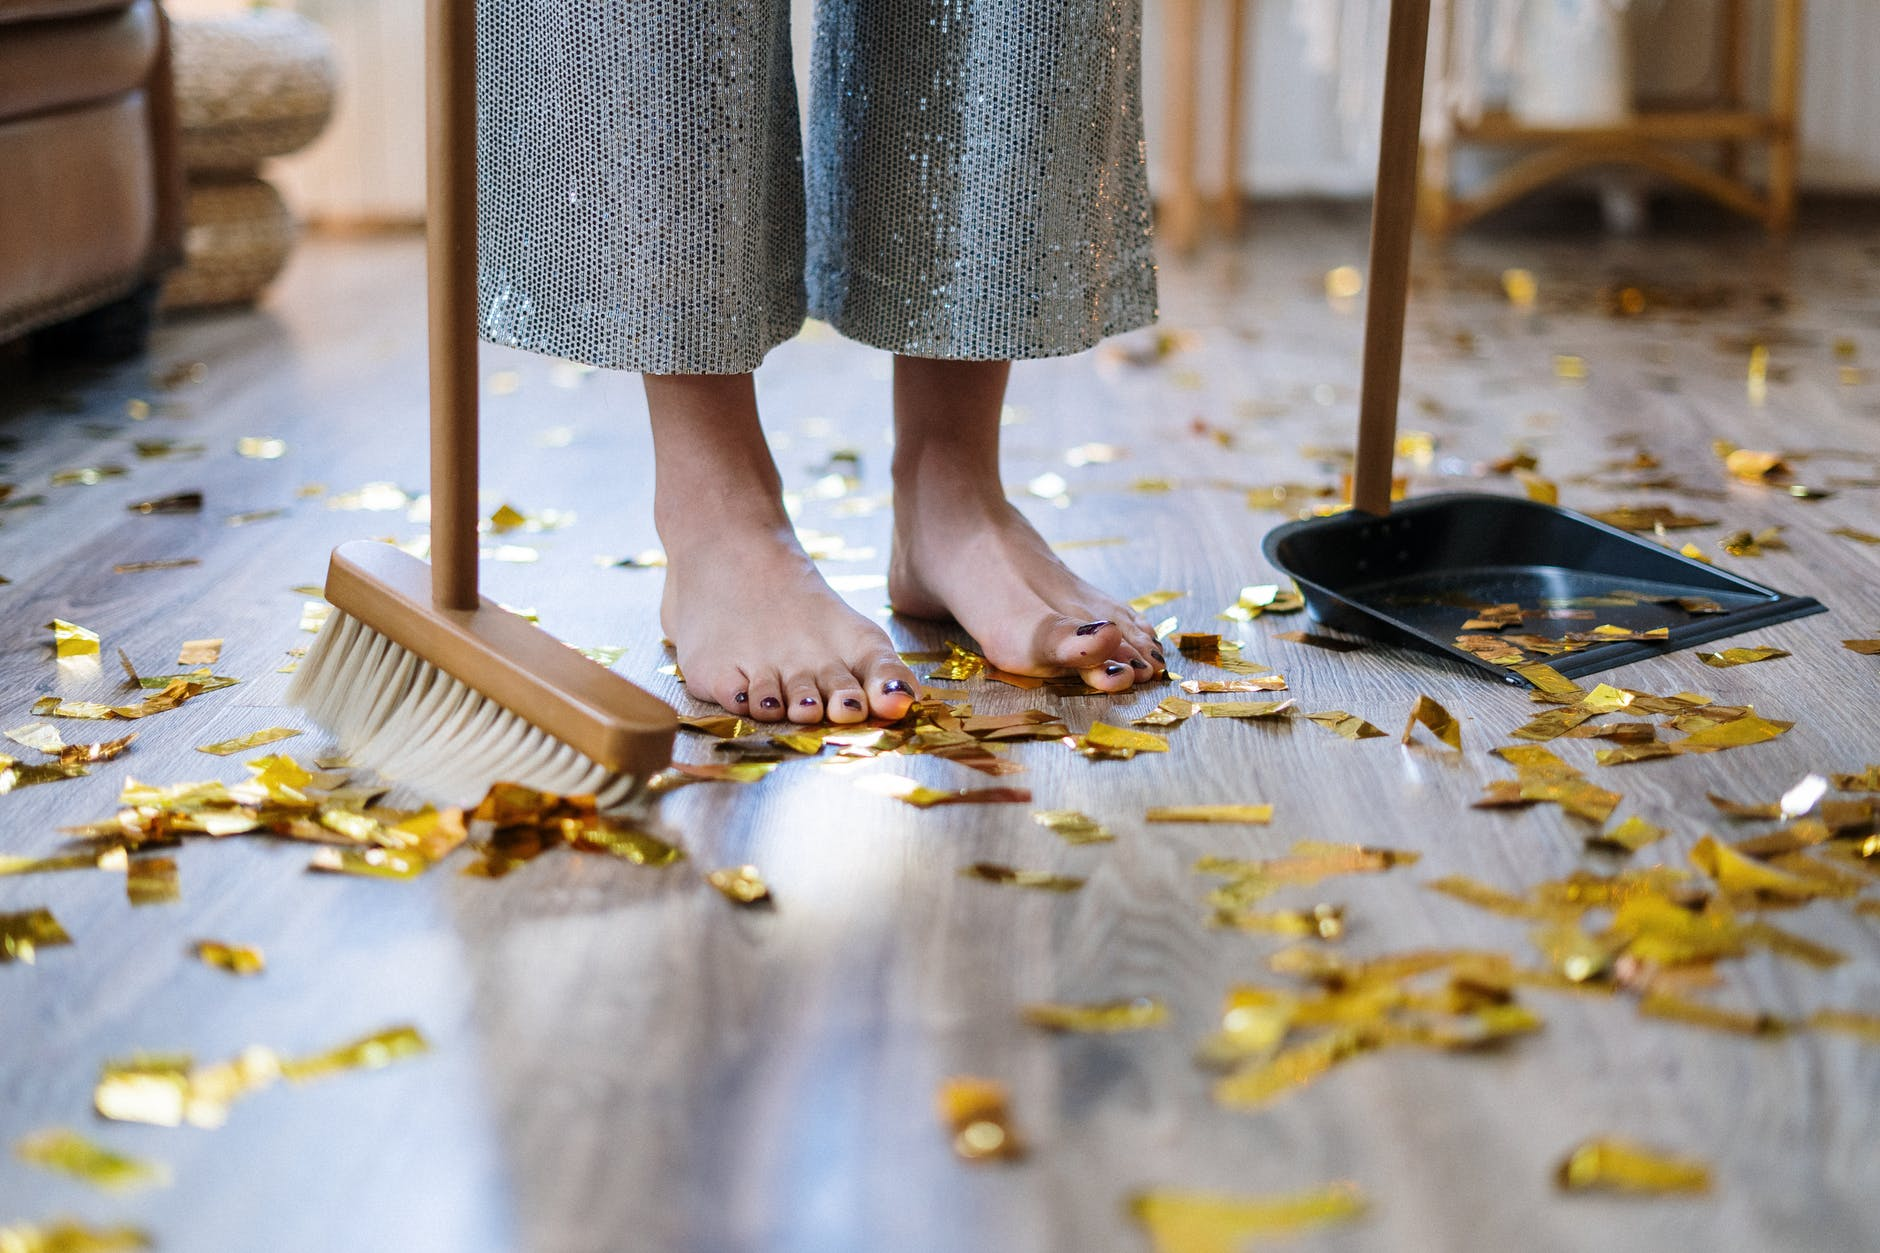 Woman sweeping confetti   Source: Pexels